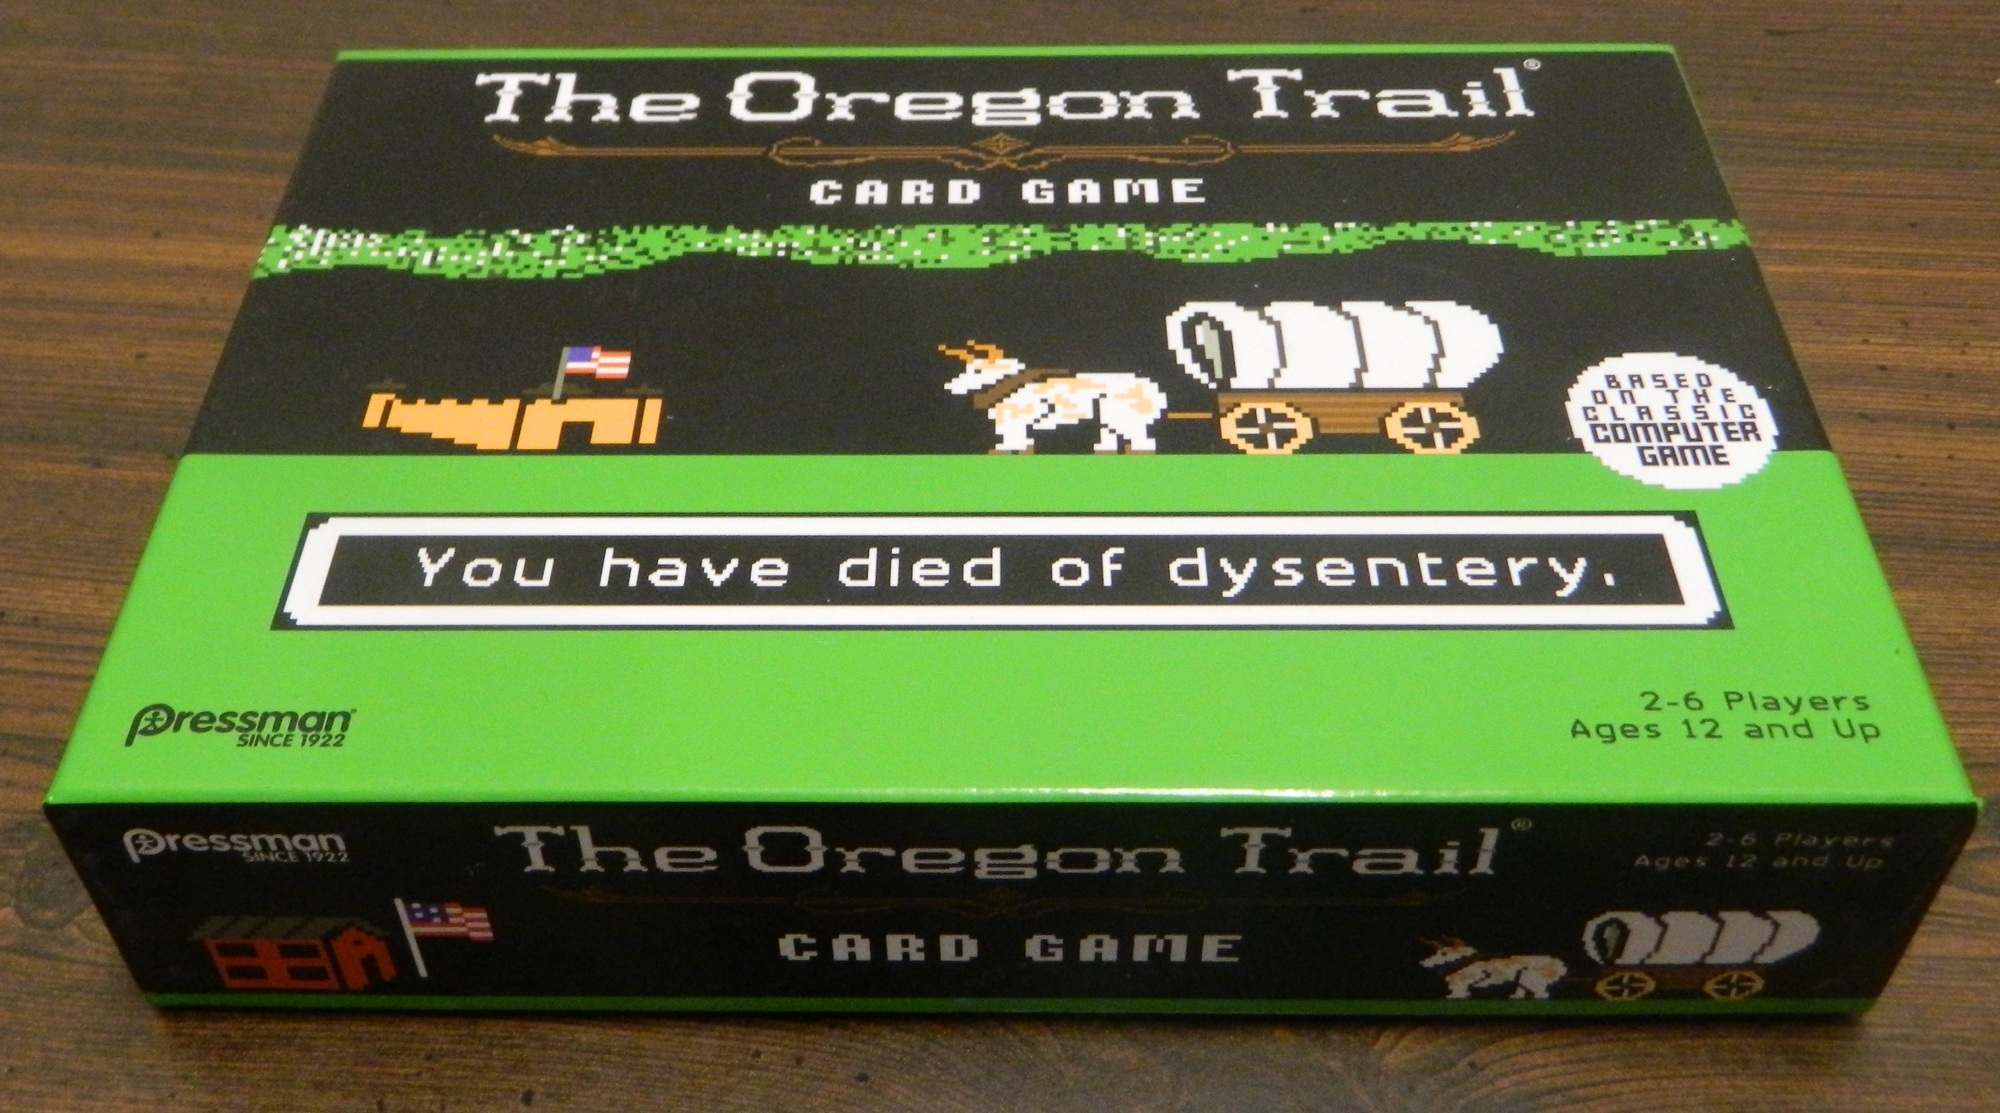 Game Box for the Oregon Trail Card Game